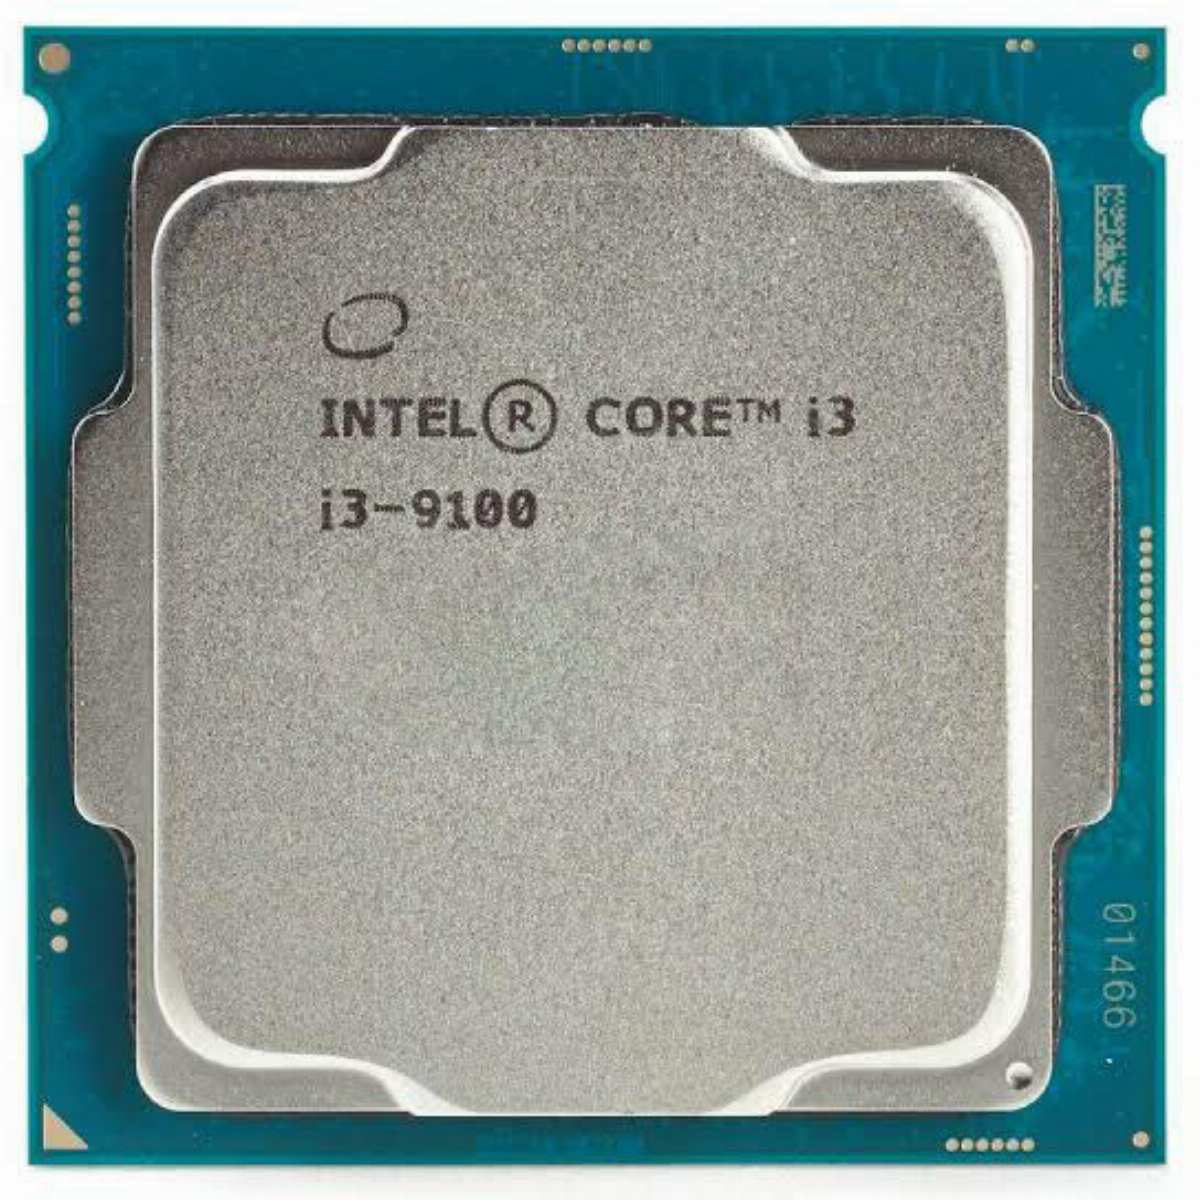 Процесор Intel Core i3-9100 (3.60GHz up to 4.20GHz, 6MB, 65W, LGA1151) Tray